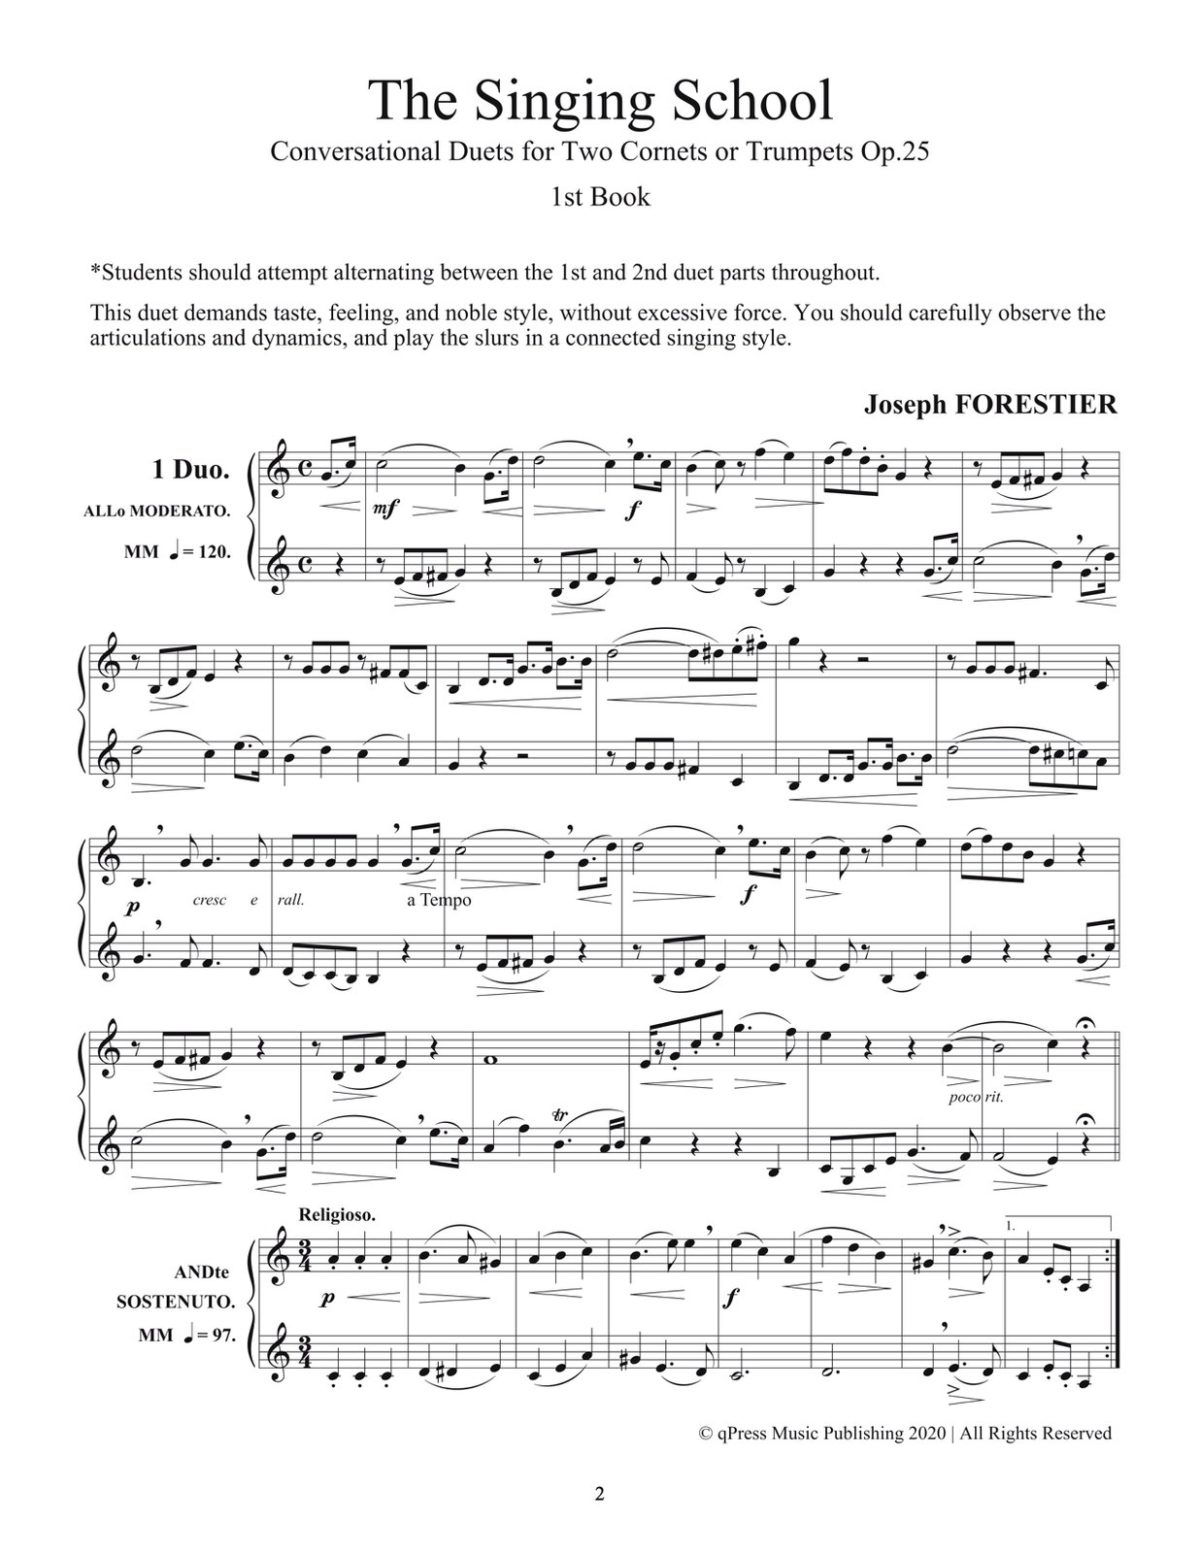 Forestier, 24 Progressive Conversational Duets for Trumpet-p02